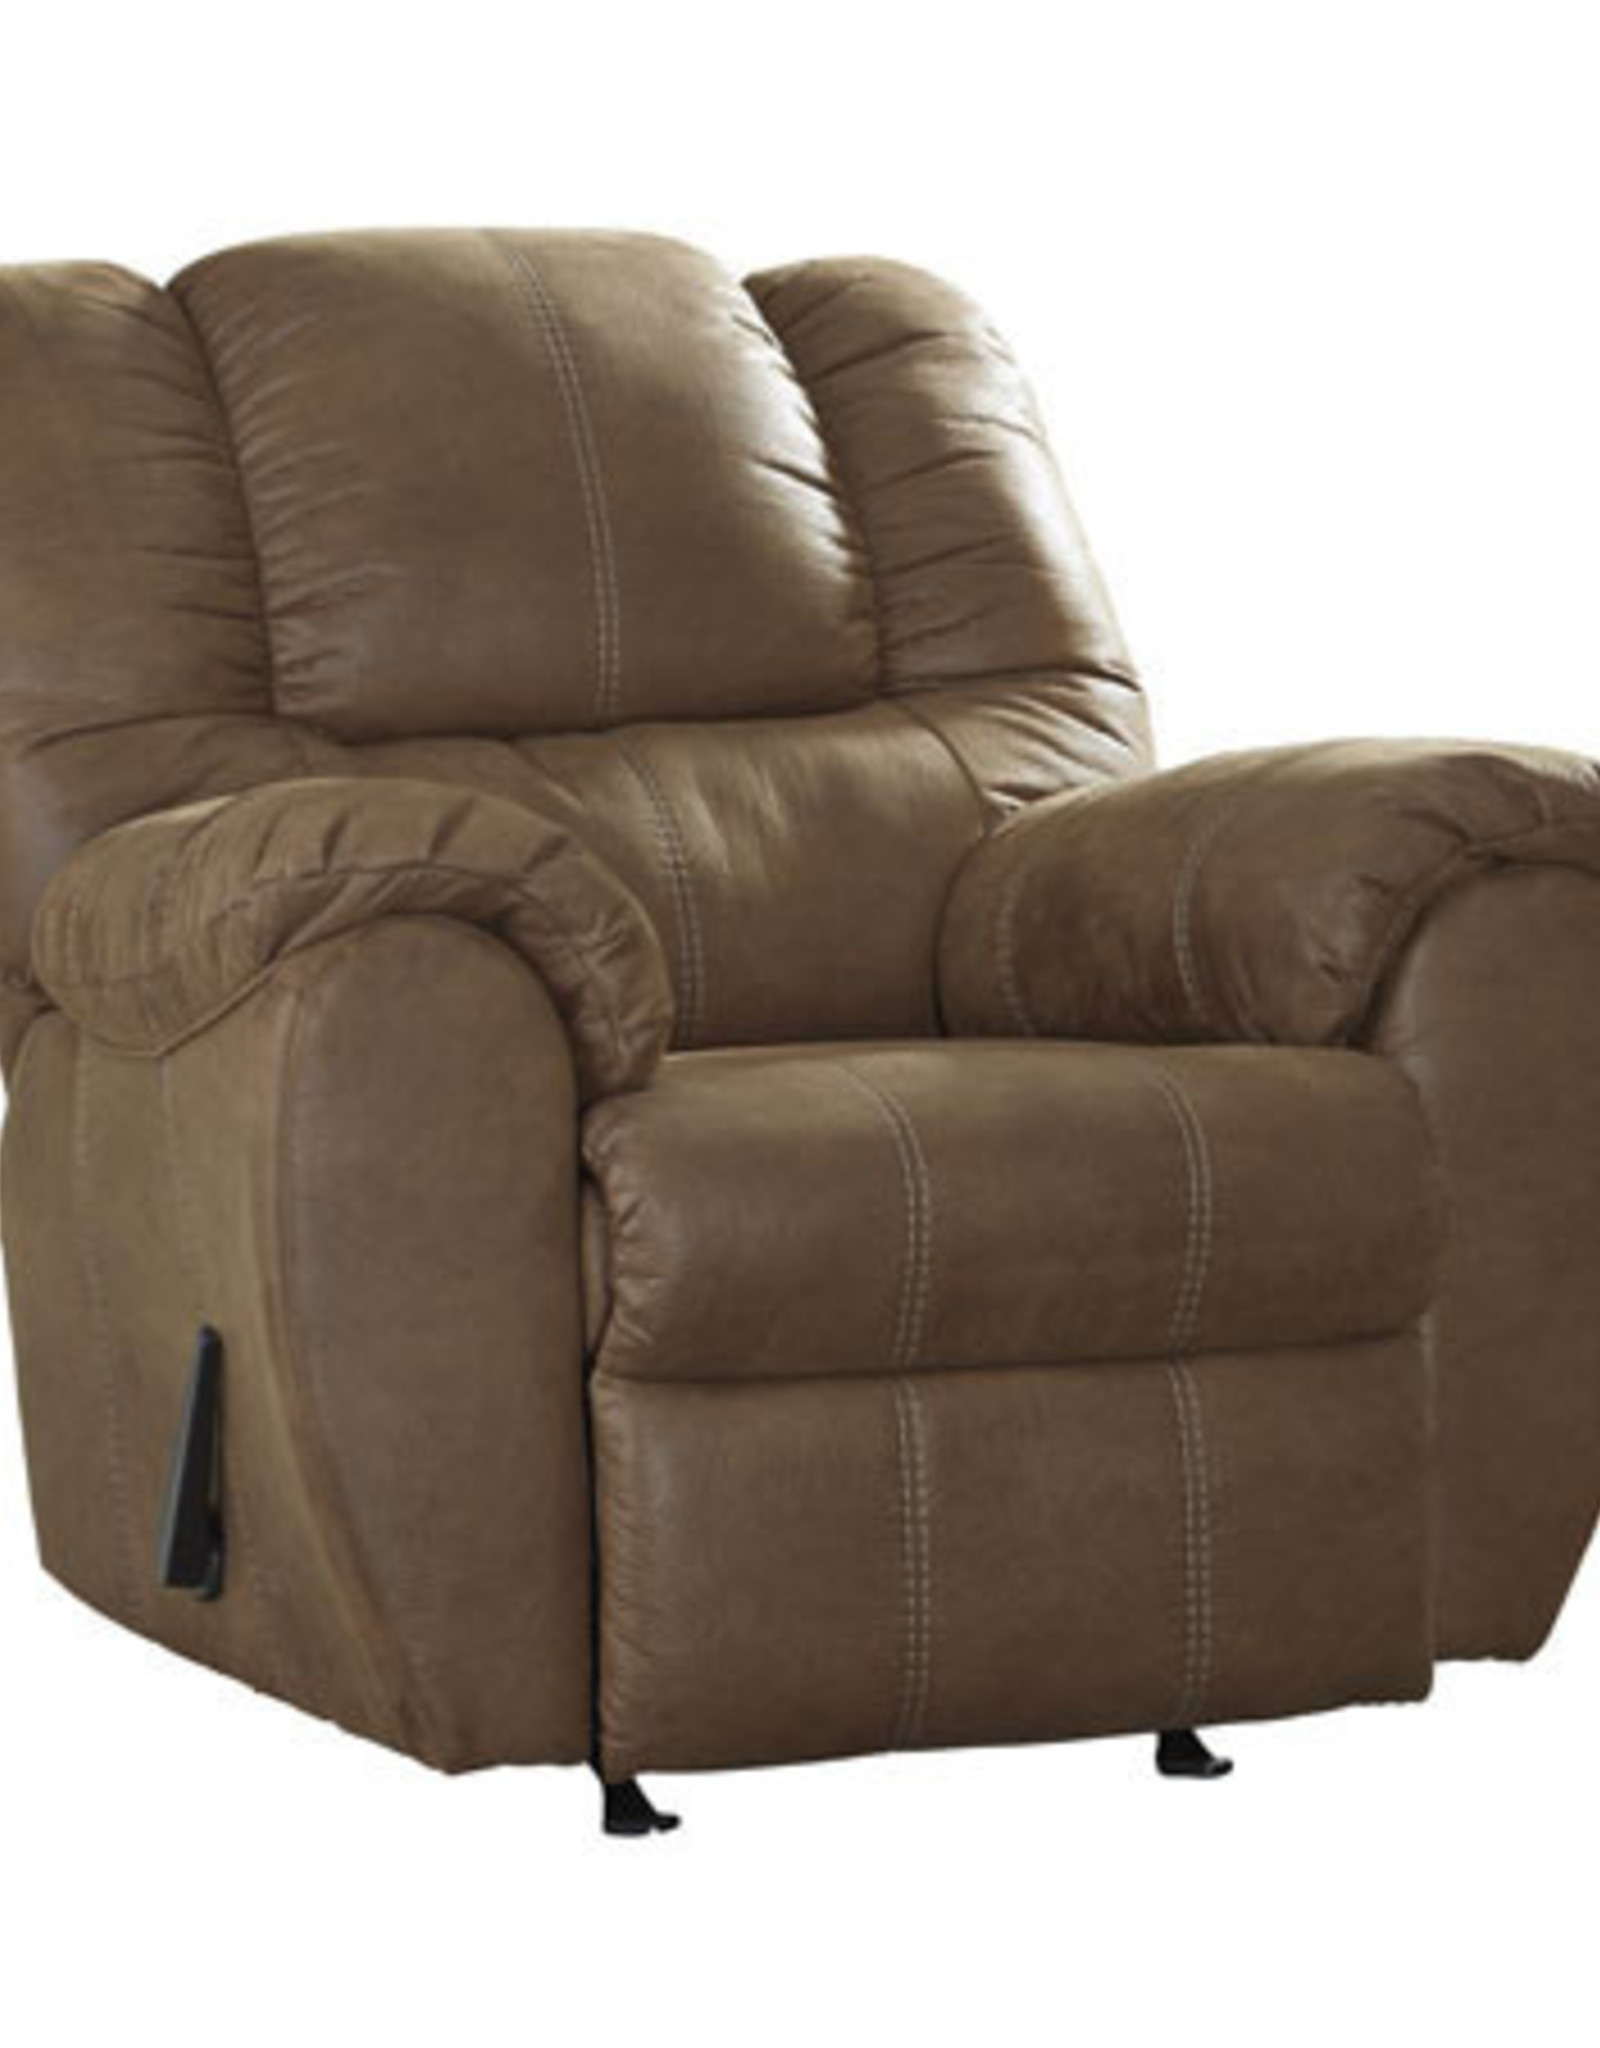 McGann Rocker Recliner (Saddle) - Online Only